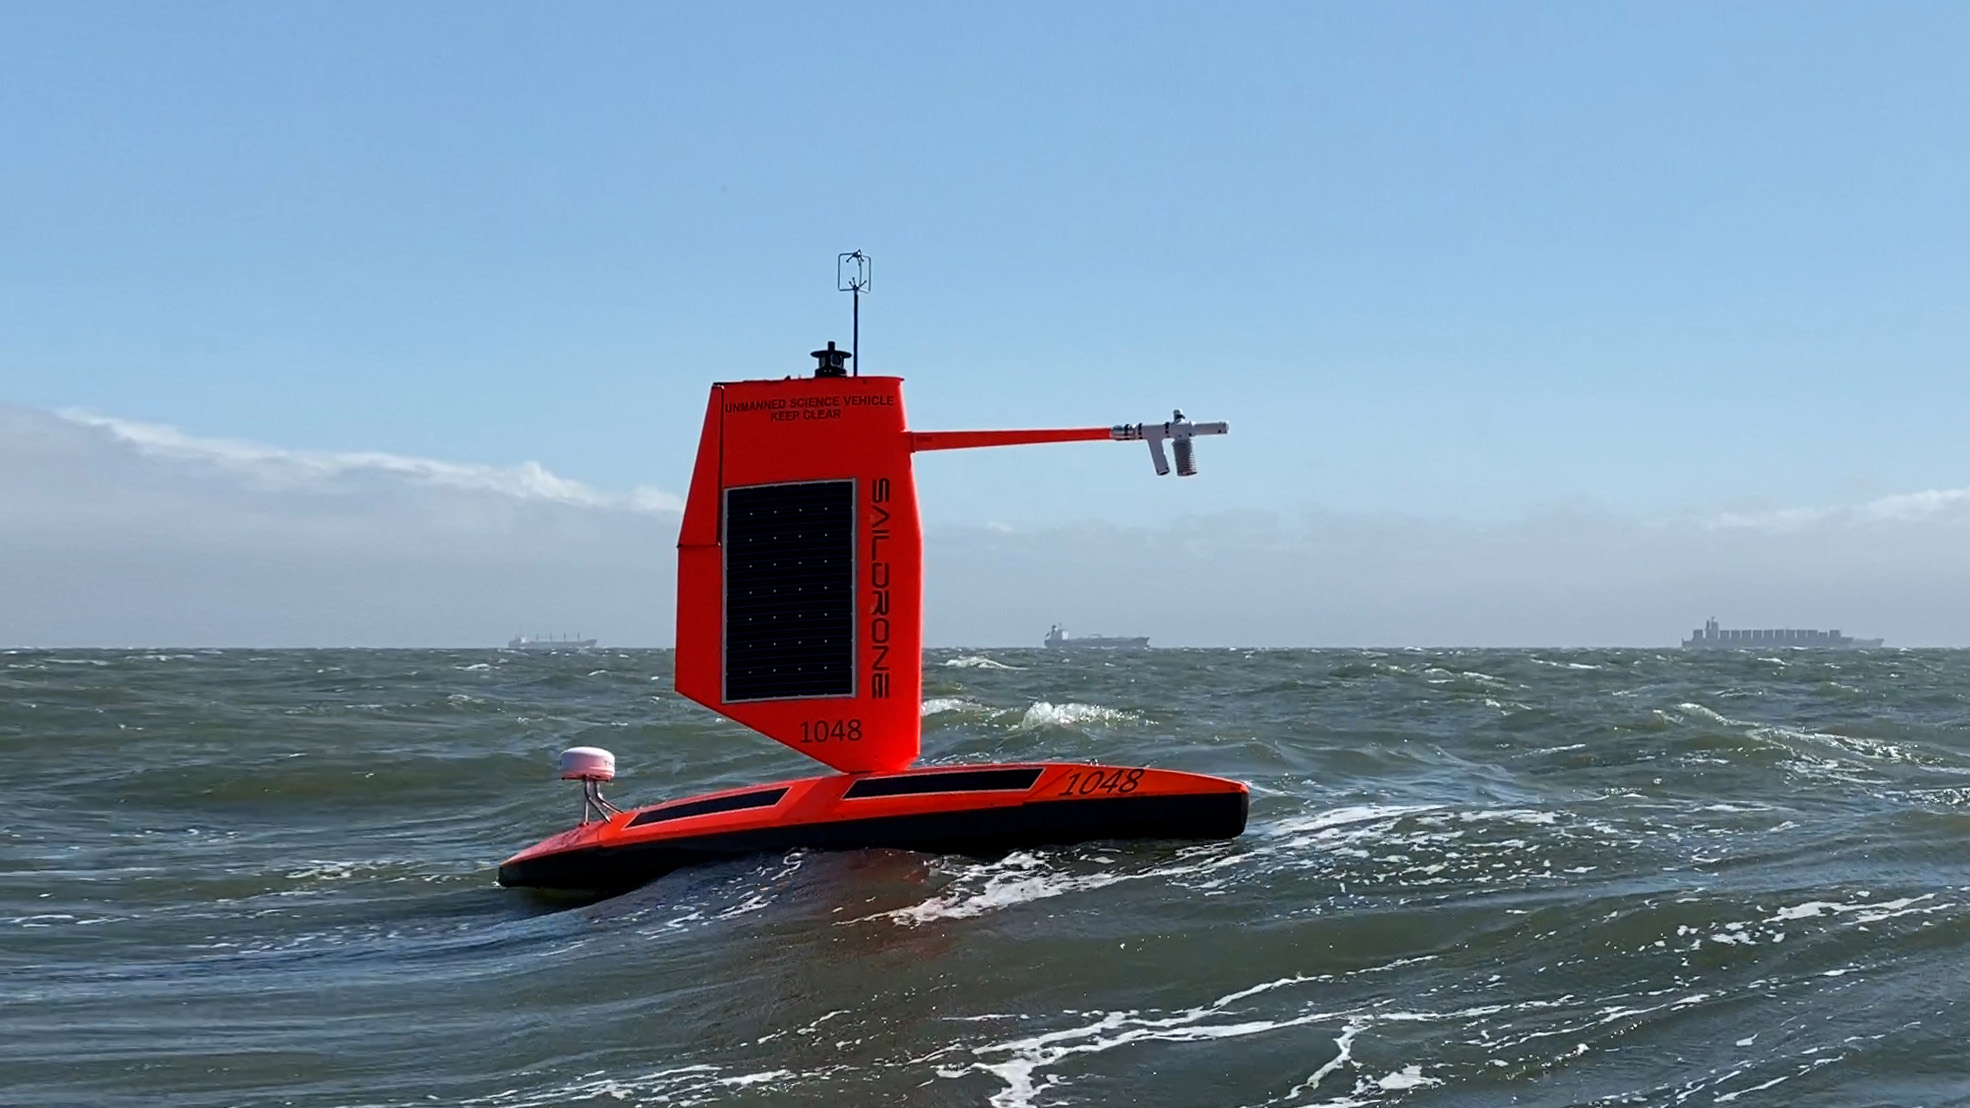 The storm-chasing Saildrones are expected to encounter winds of more than70 mph and waves over 10 feet